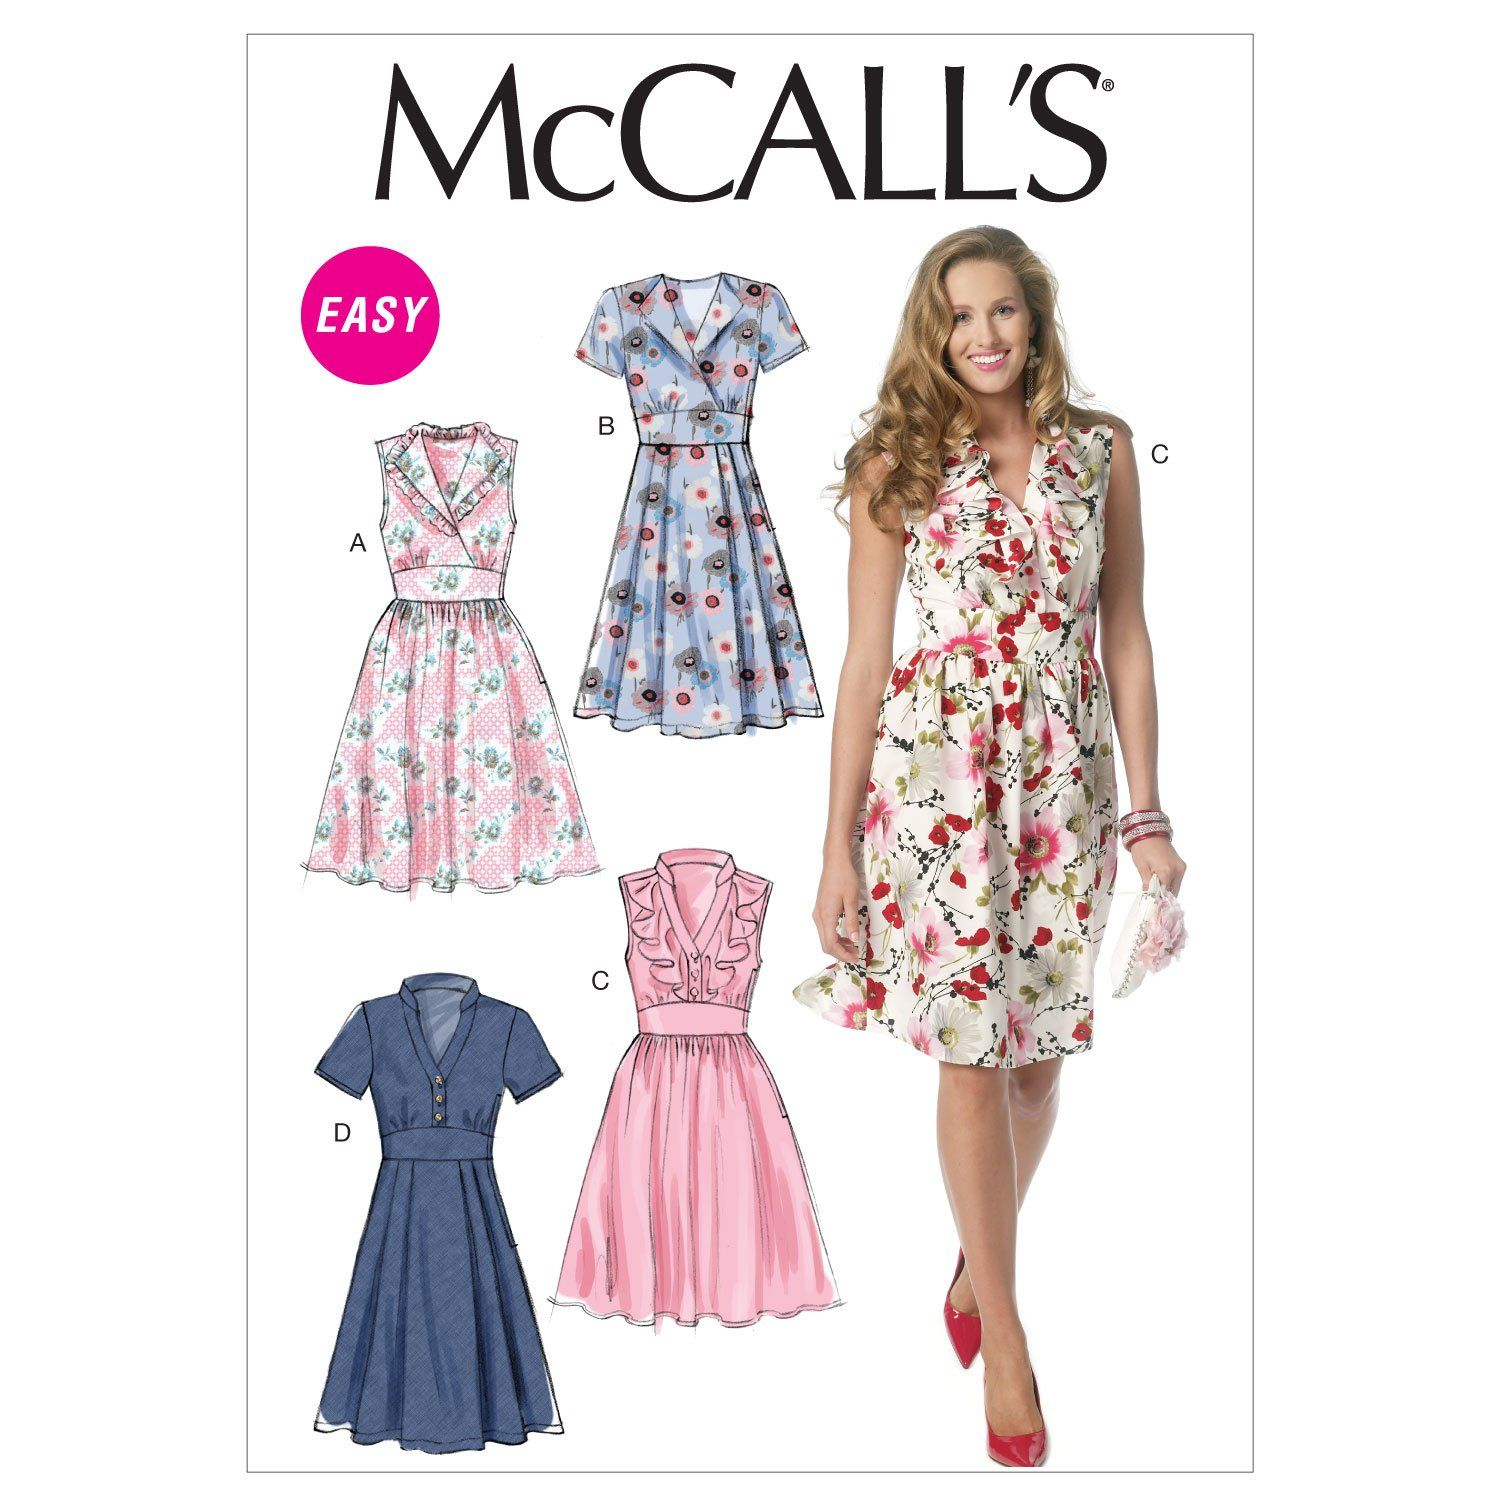 Mccalls sewing pattern 7745 Robes E5 14-16-18-20-22